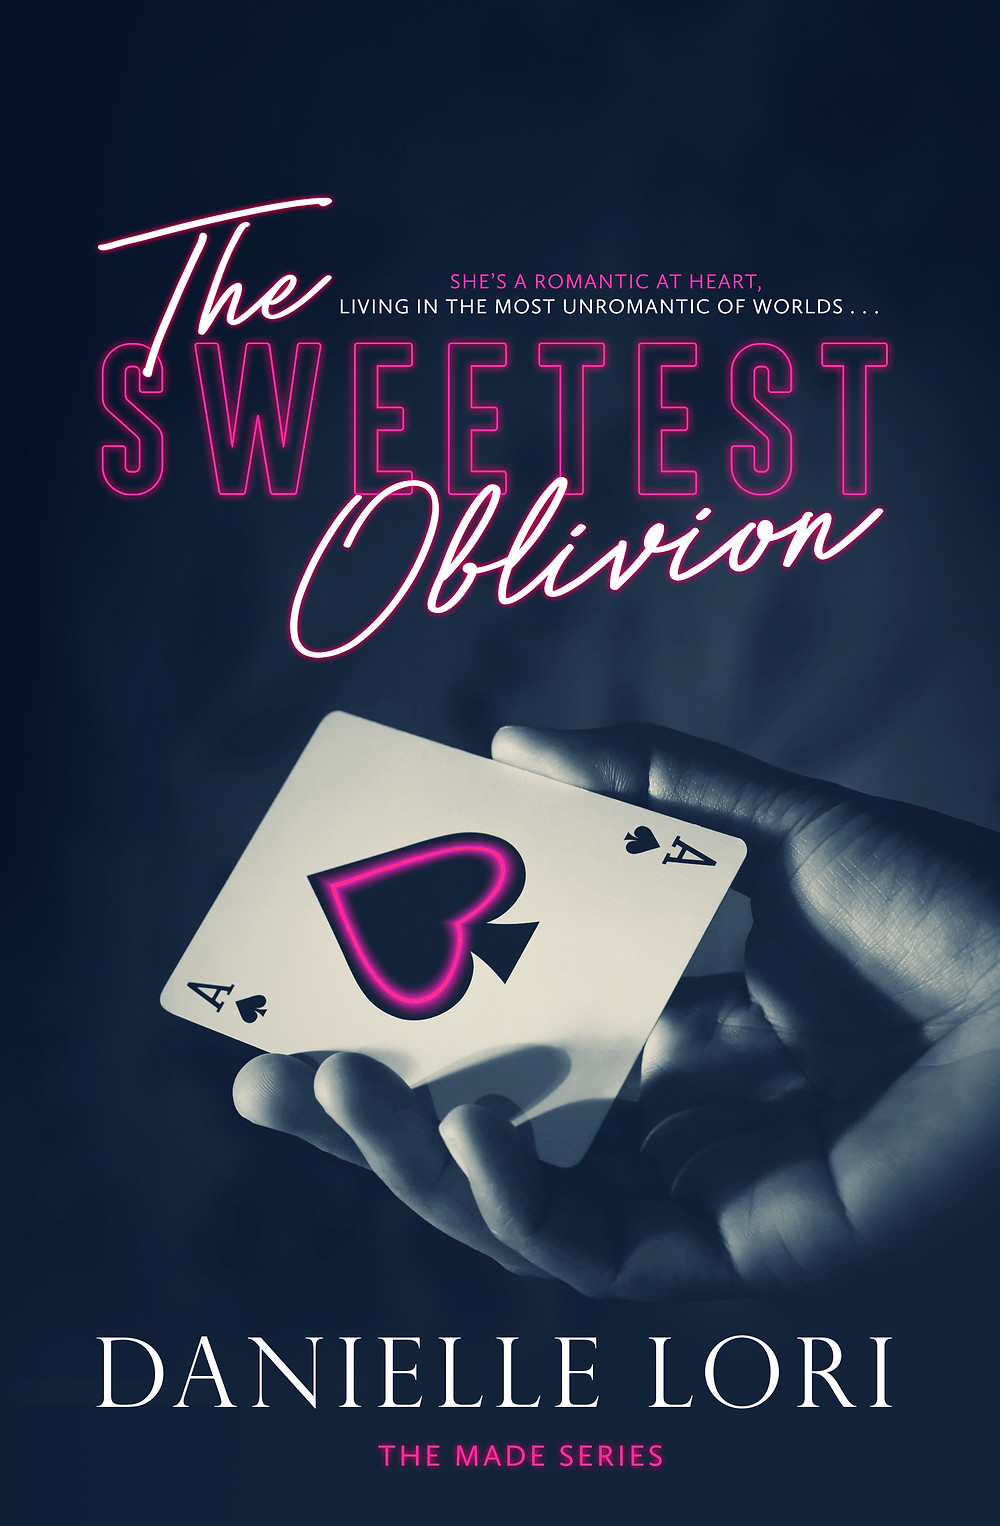 The Sweetest Oblivion, Mafia Romance, Danielle Lori, Author Interview, affordable book editor, ebook editor, affordable book editing services, freelance editor, ebook promotion